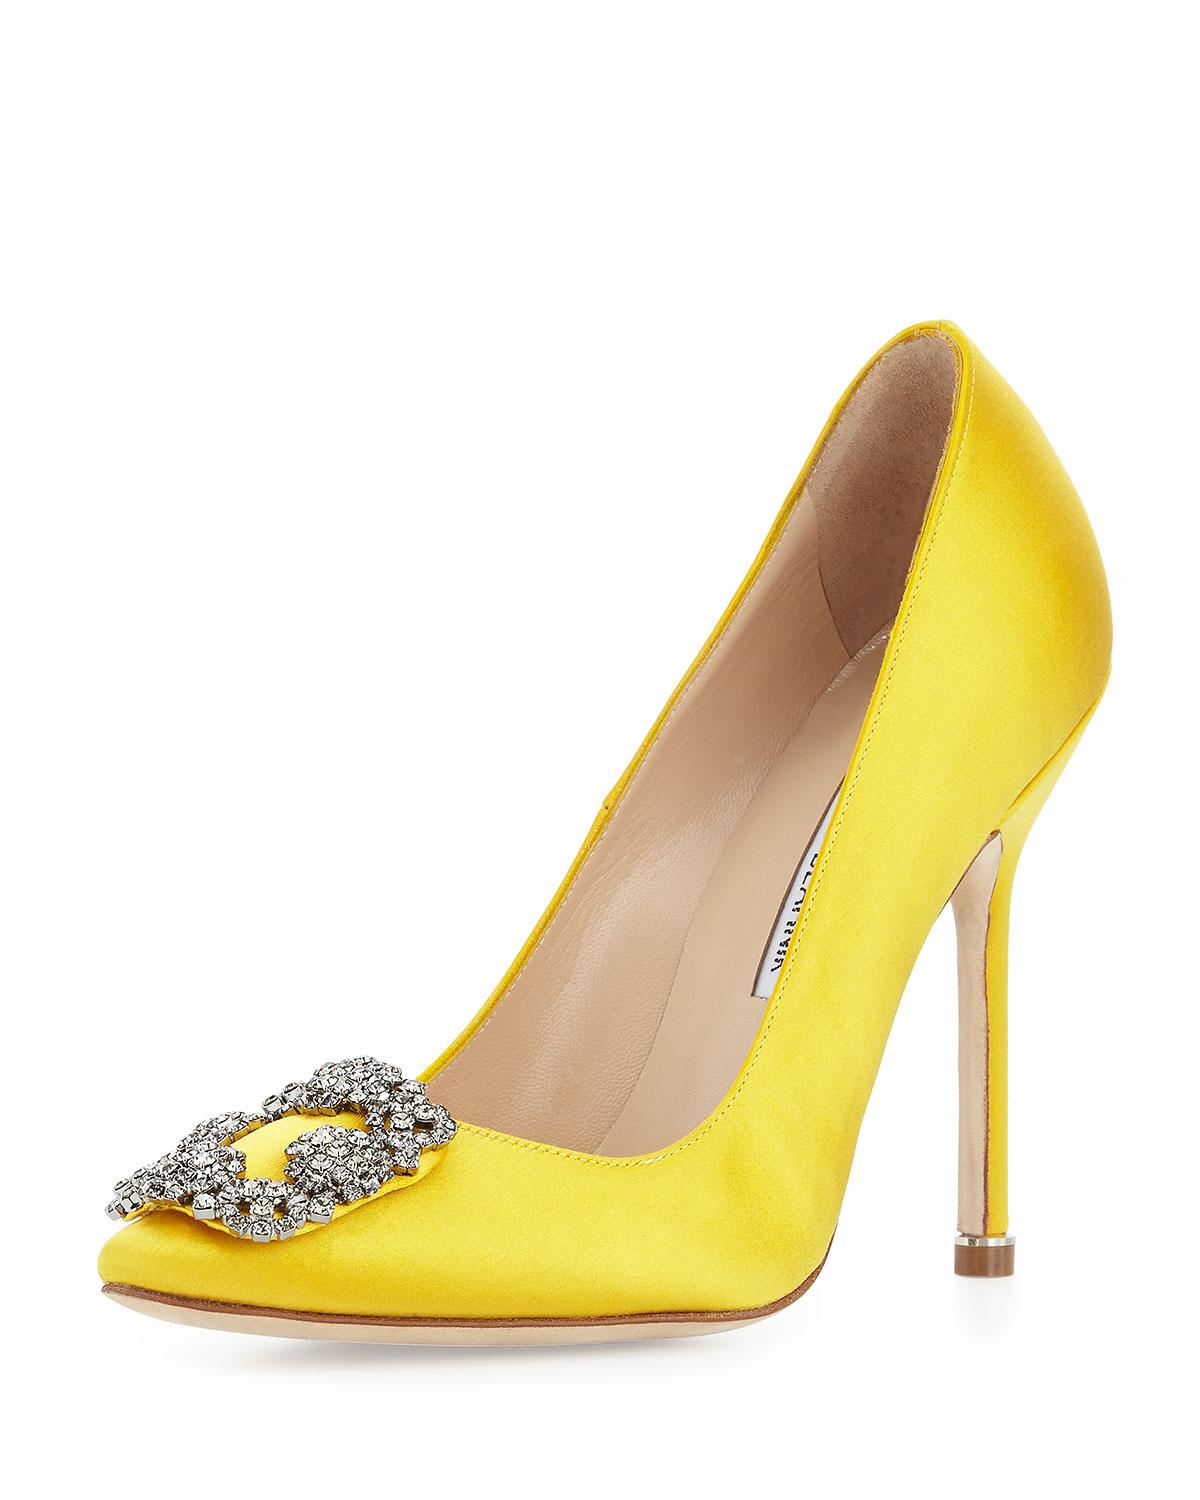 Lyst manolo blahnik hangisi satin crystal toe pump in yellow for Who is manolo blahnik